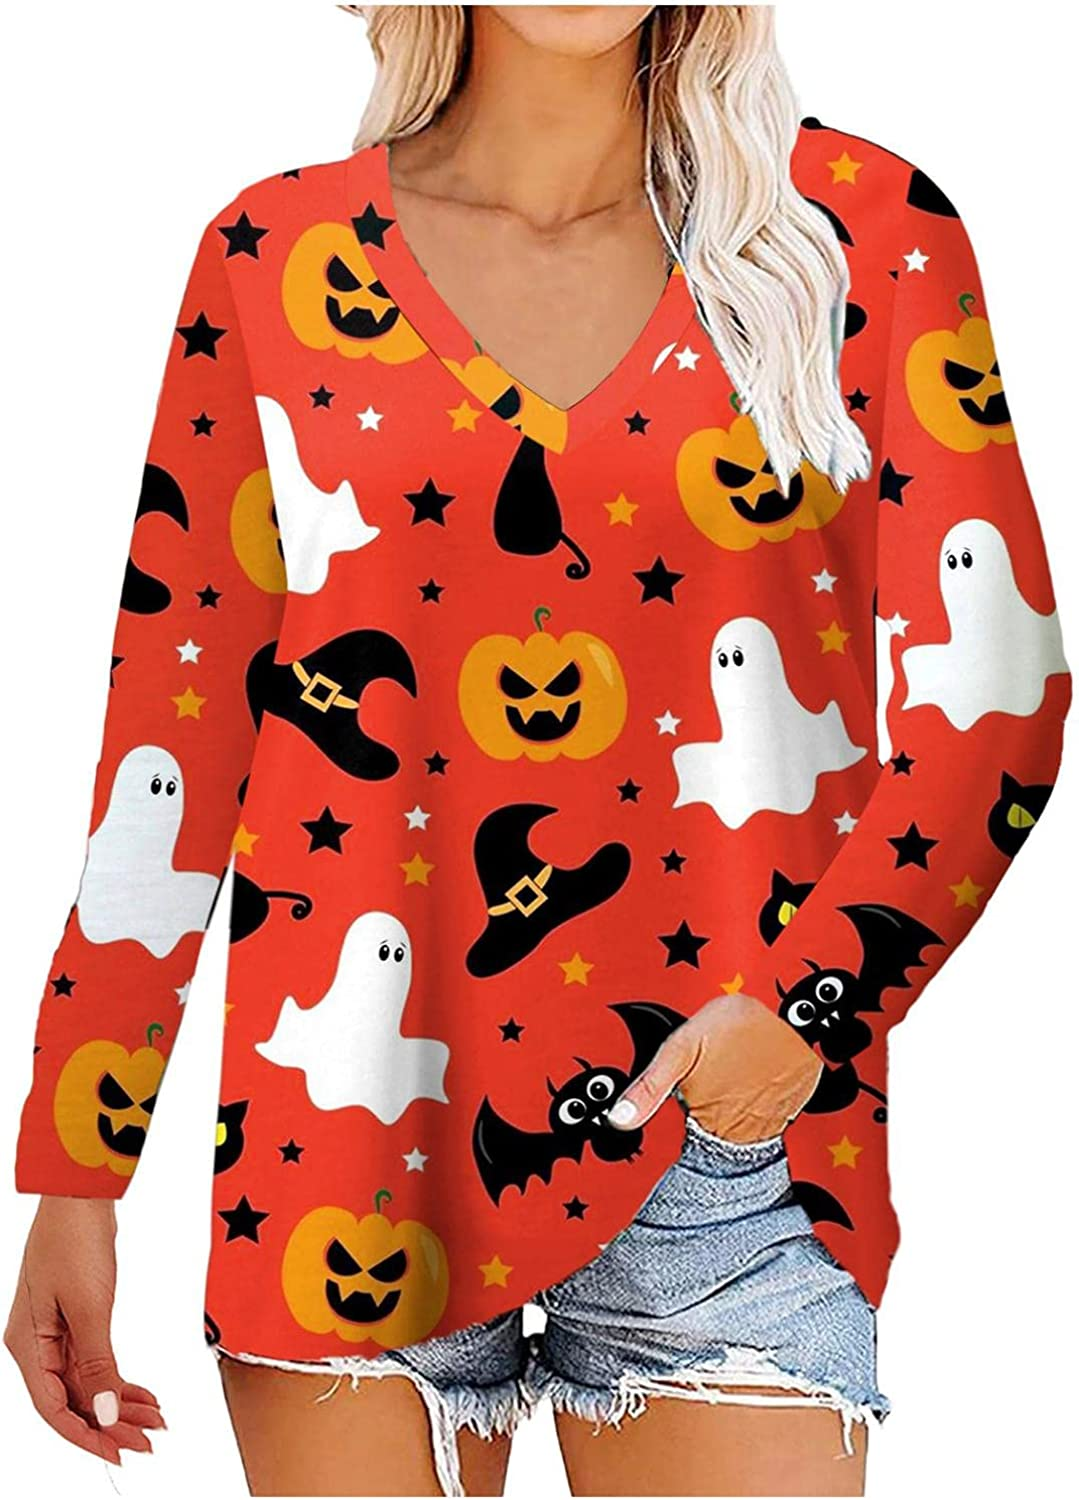 Halloween Pumpkin Face Bat Switch Ghost Sweatshirt Women Long Sleeve V Neck Tops Casual Loose Funny Pullover Blouse Shirts